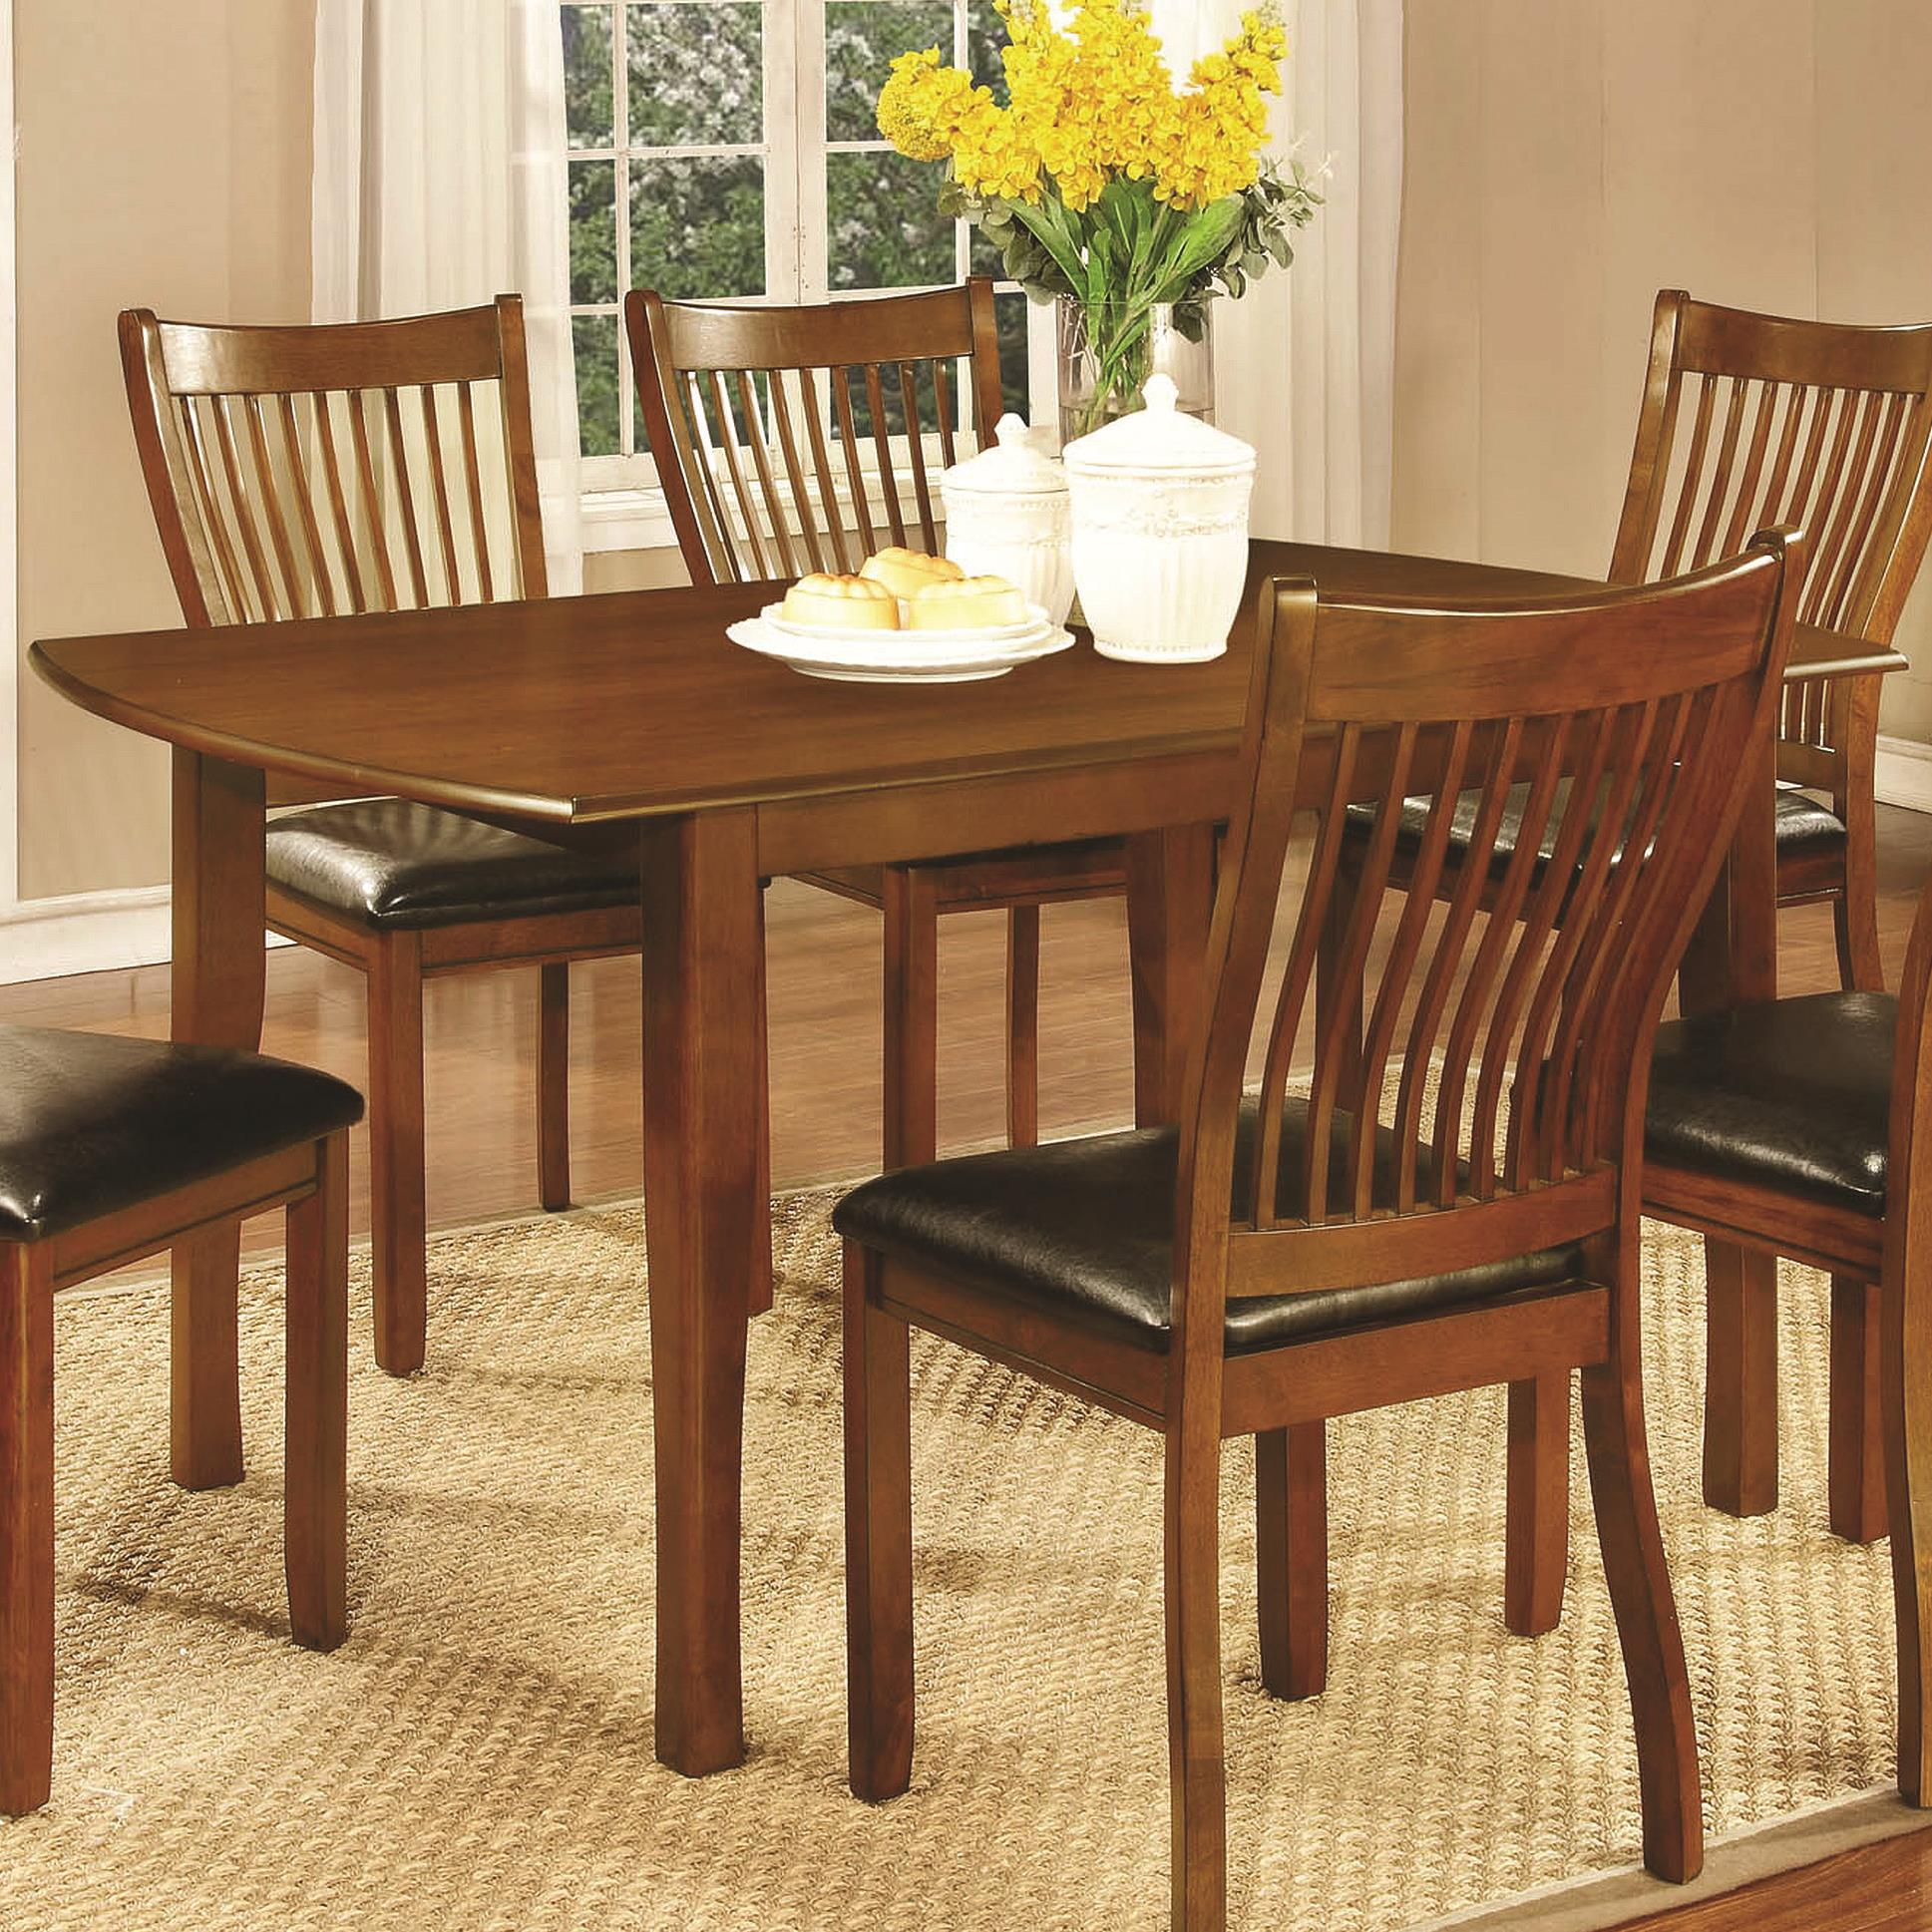 sierra rectangular dining table with block legs quality furniture at